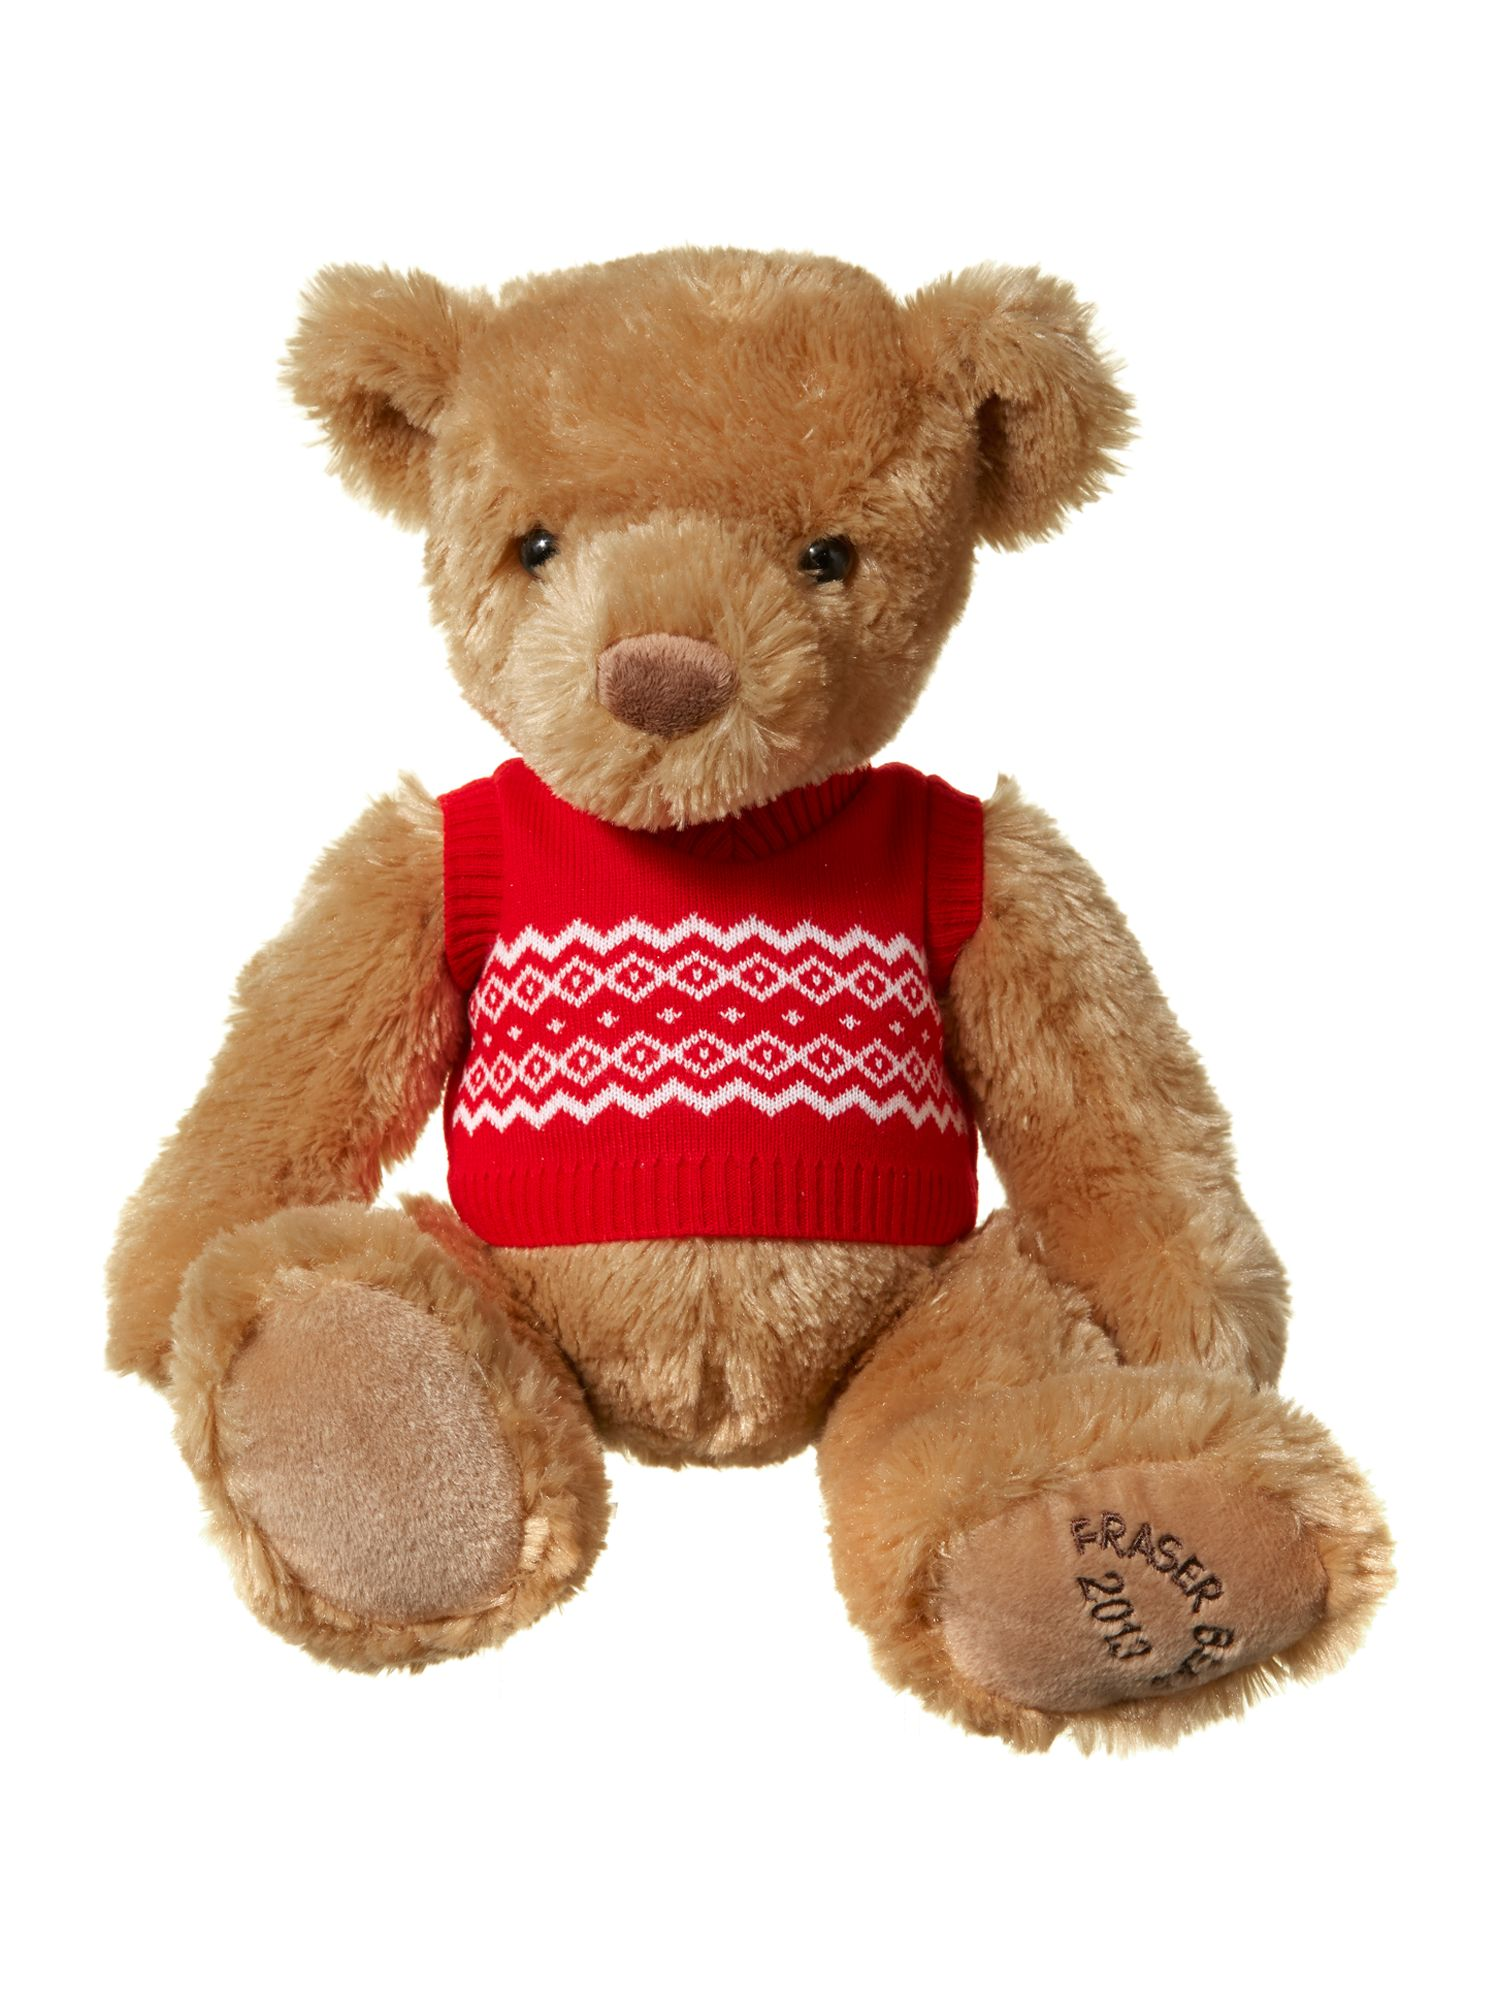 12 inch Fraser bear with tank top